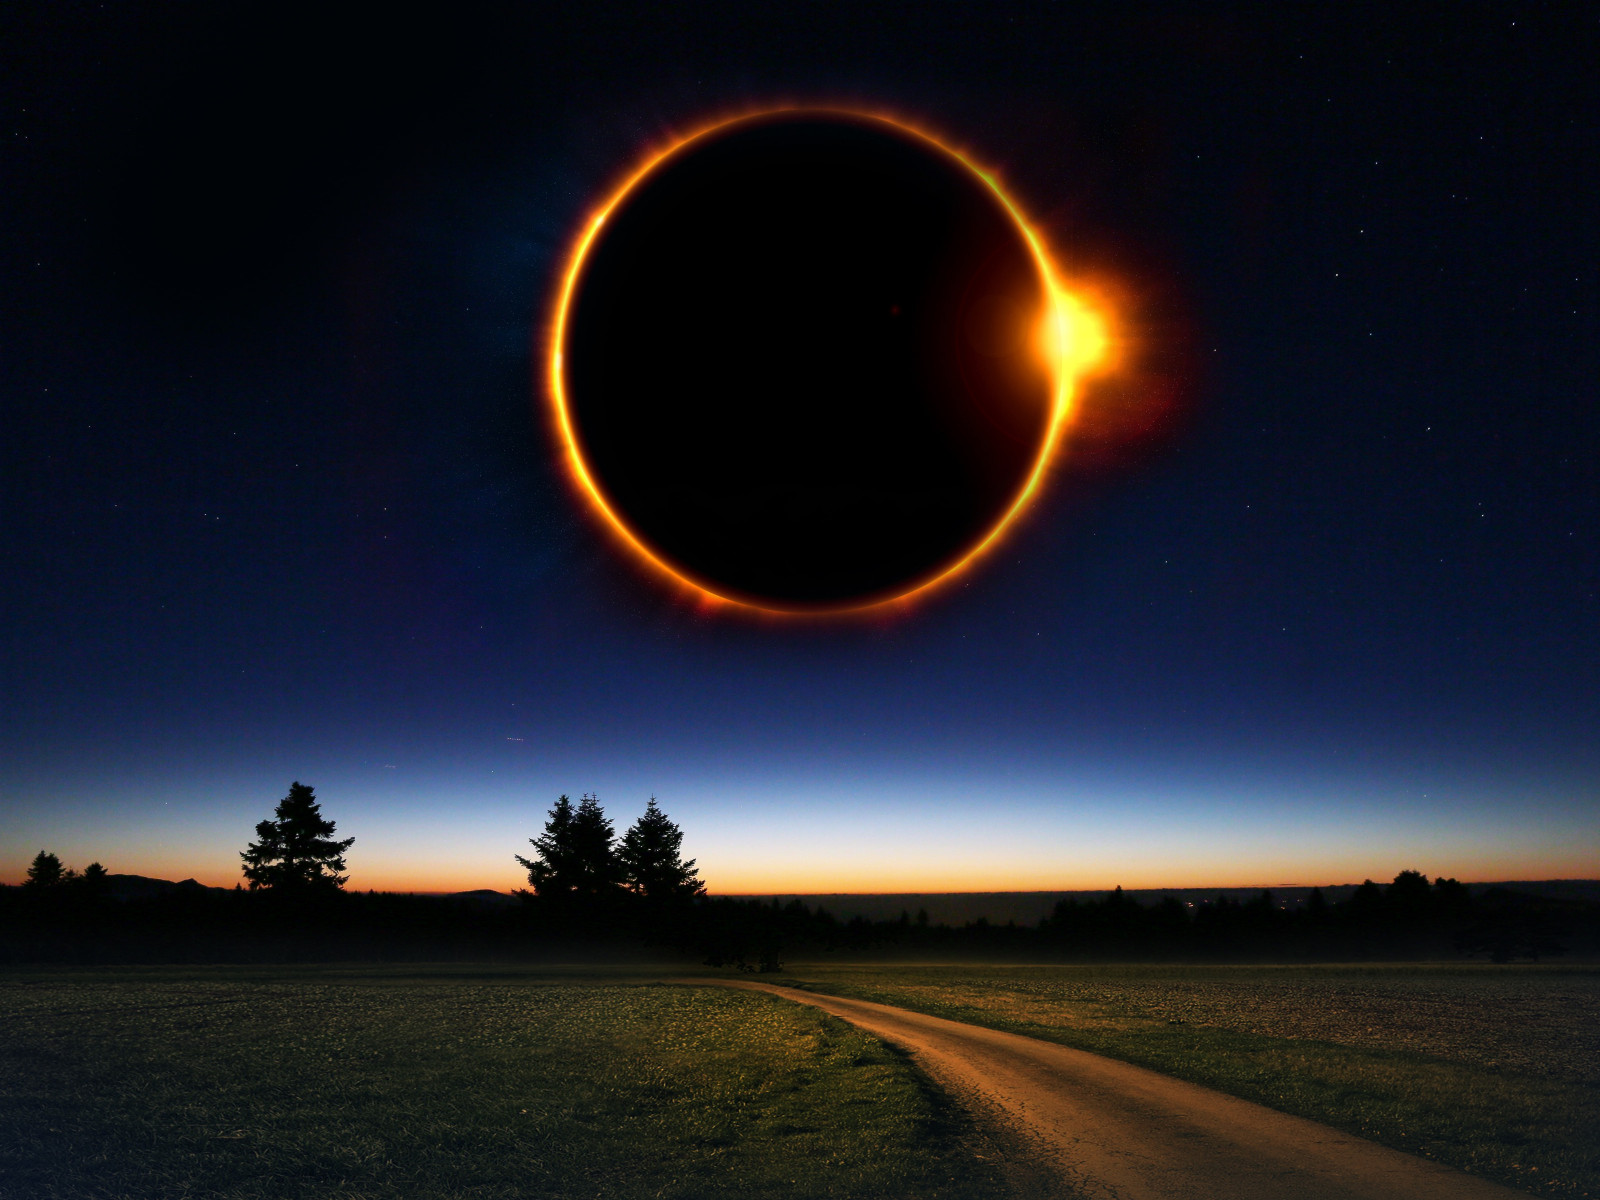 Fantasy solar eclipse wallpaper 1600x1200